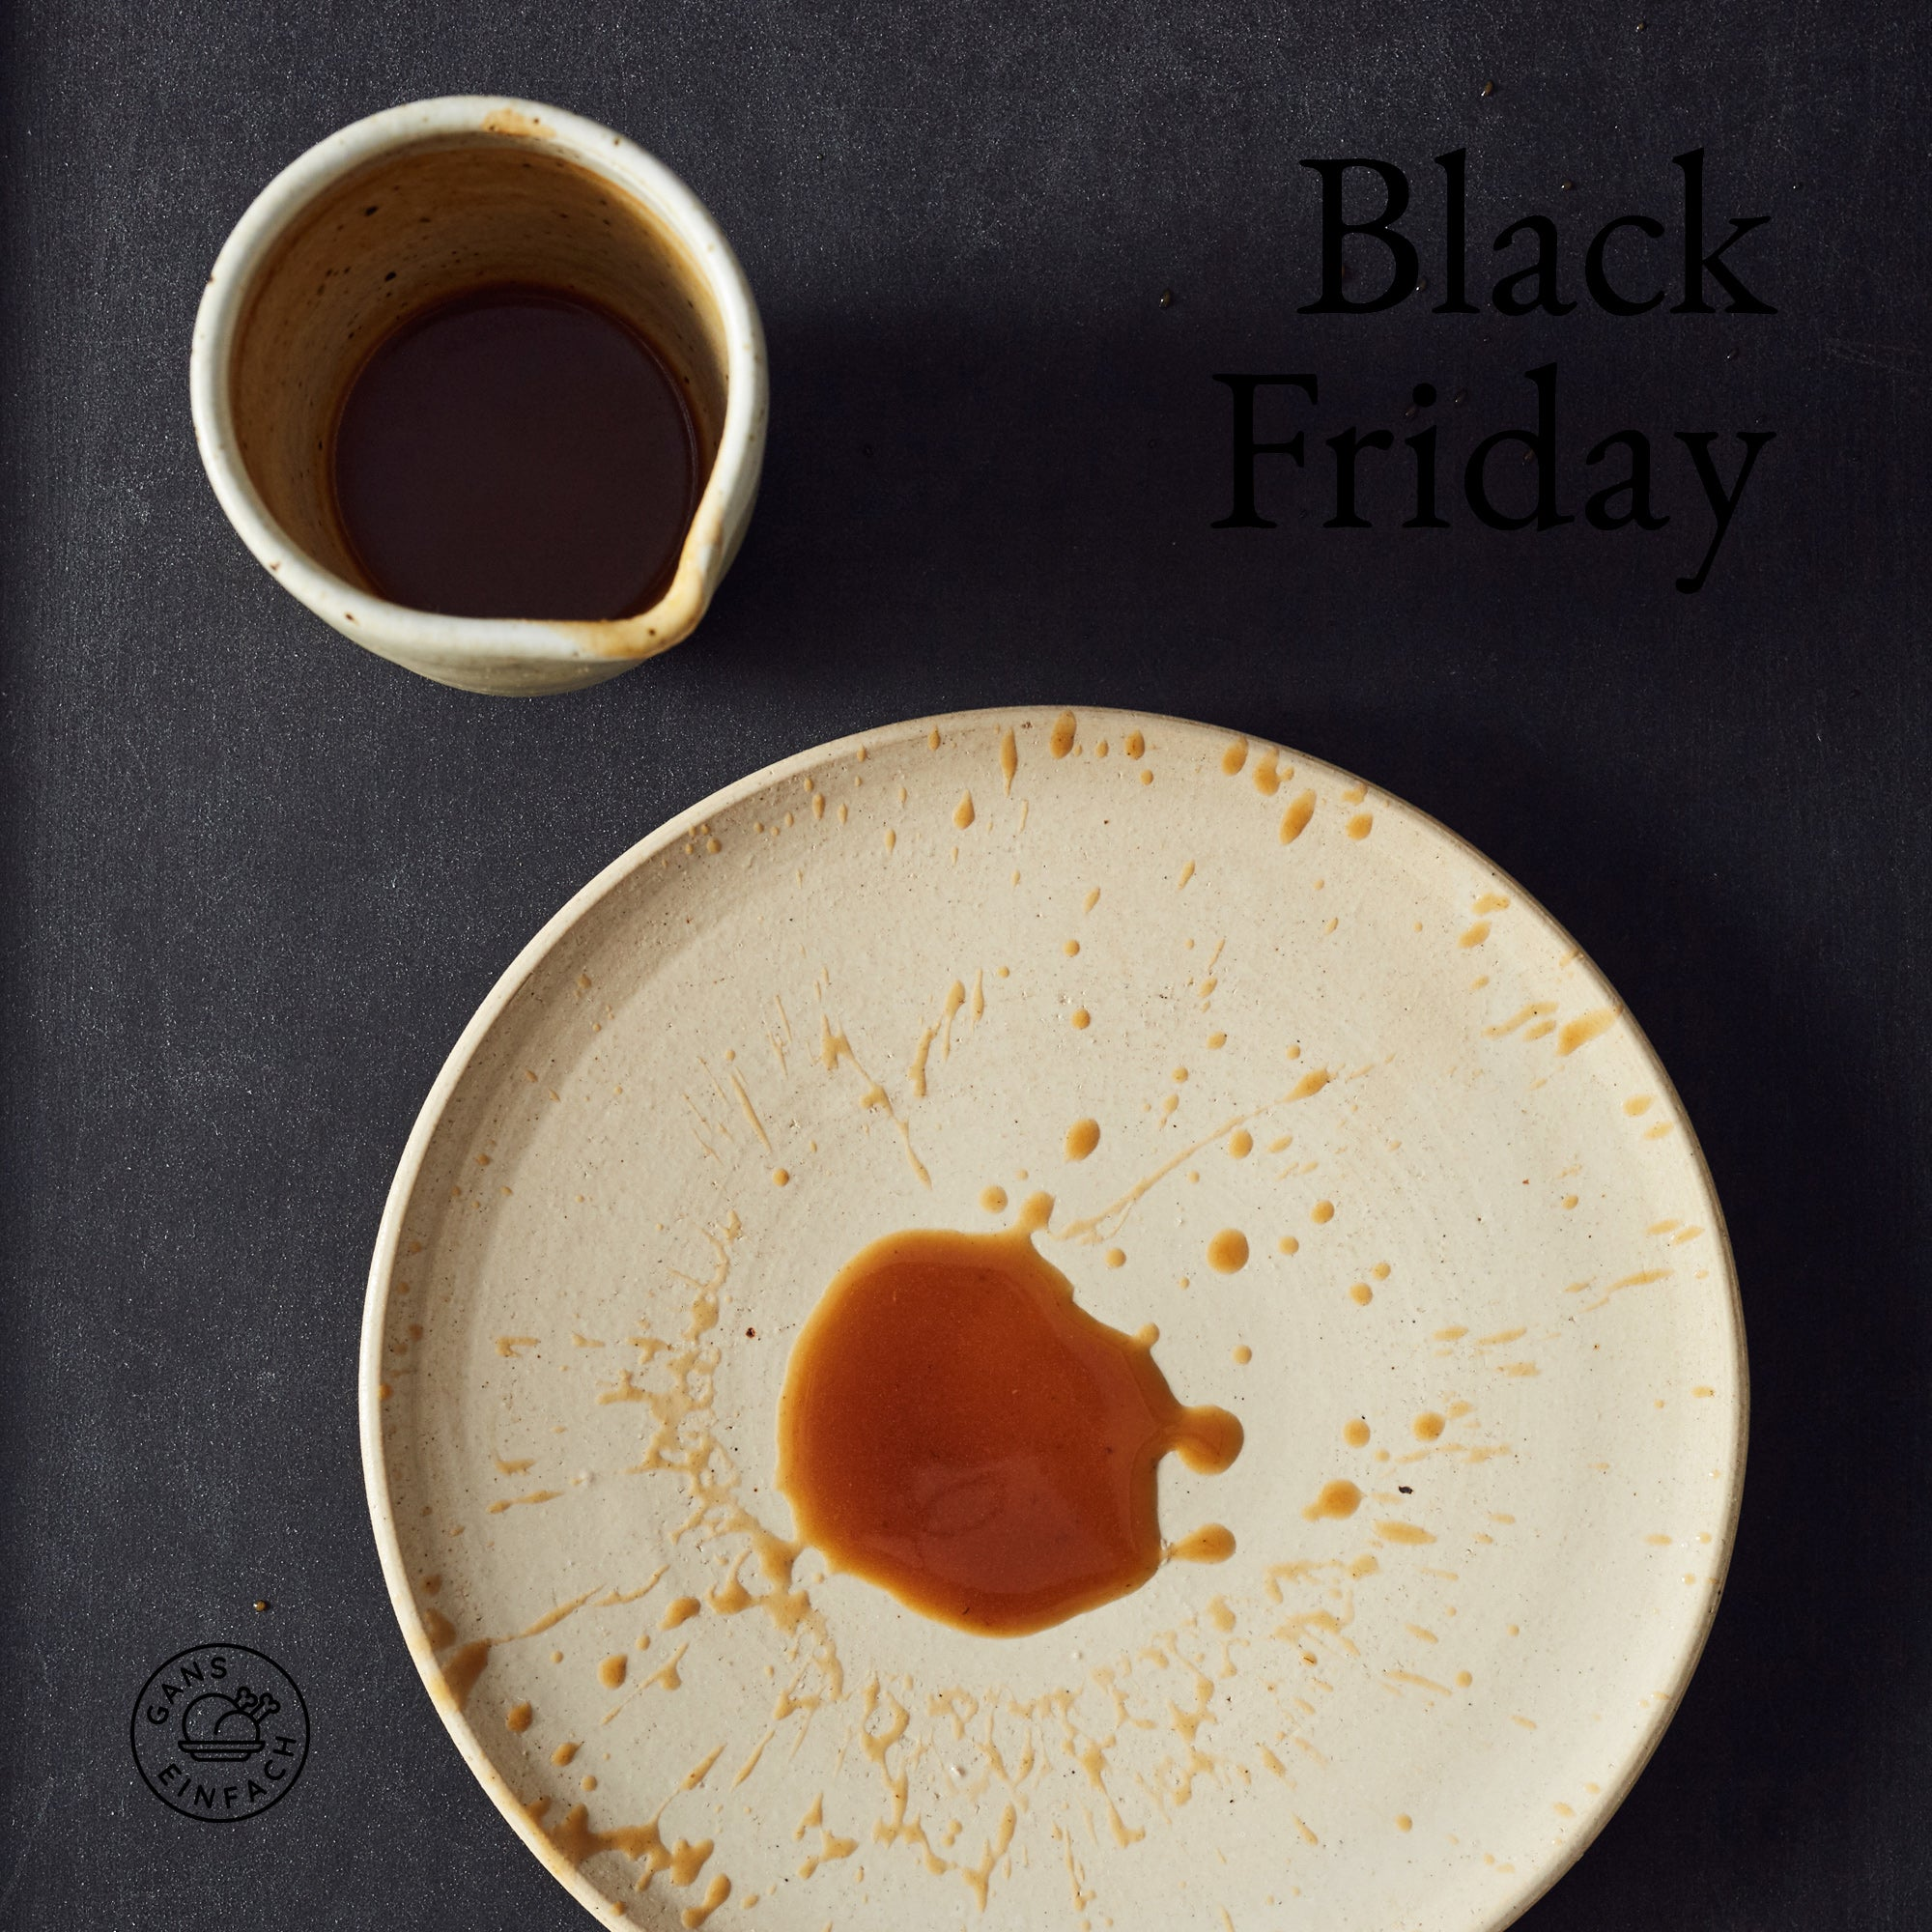 Black Friday: Orangen-Beifuß-Sauce 100% Discountcode